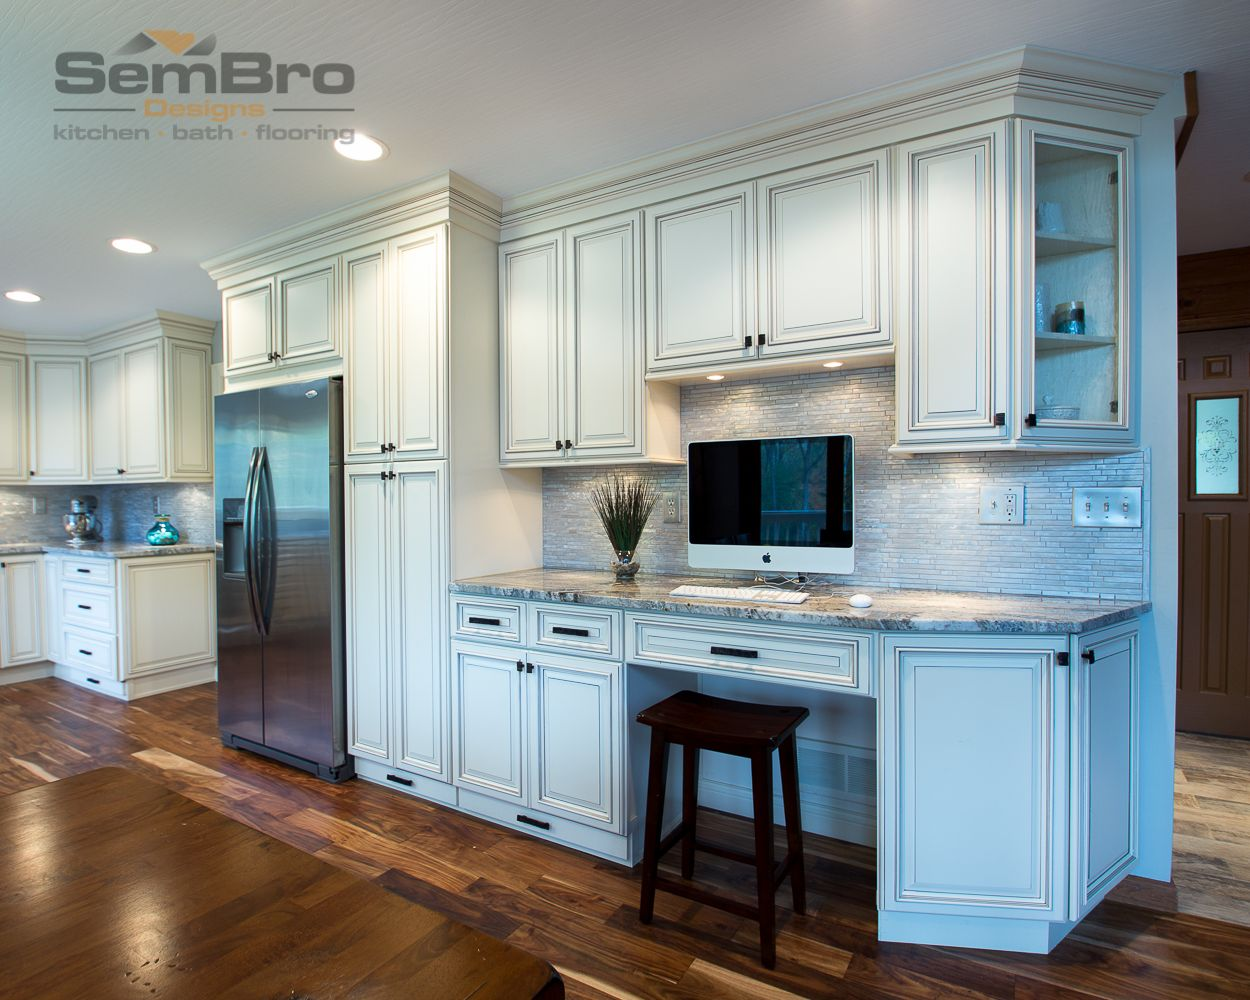 Home Remodeling in Columbus, OH - SemBro Designs